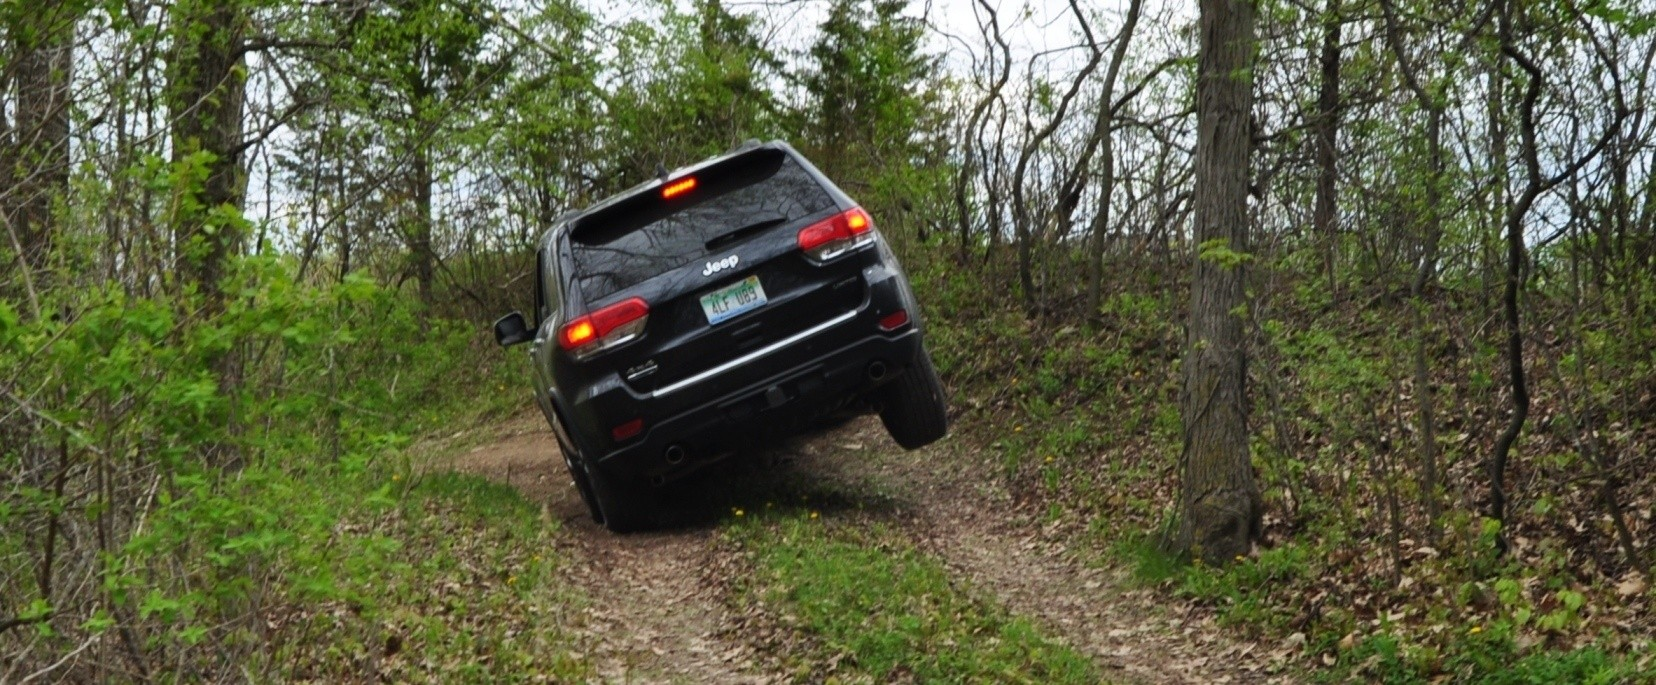 2014 Jeep Grand Cherokee Shows Its Trail Rated Skills Off-Road 1